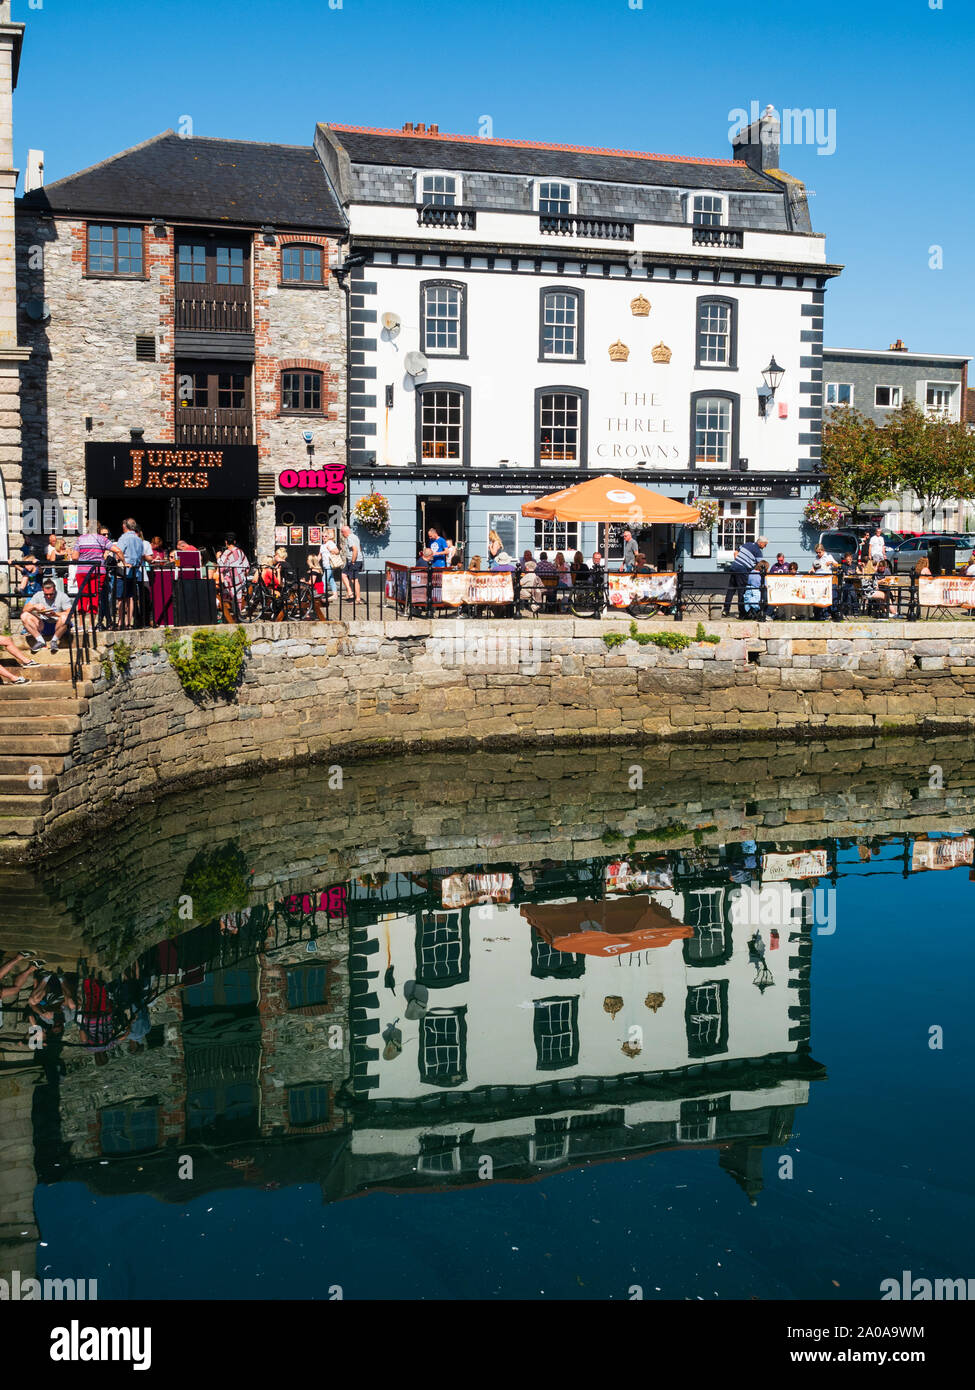 diners-at-tables-outside-the-three-crowns-pub-reflected-in-the-water-of-sutton-harbour-plymouth-2A0A9WM.jpg